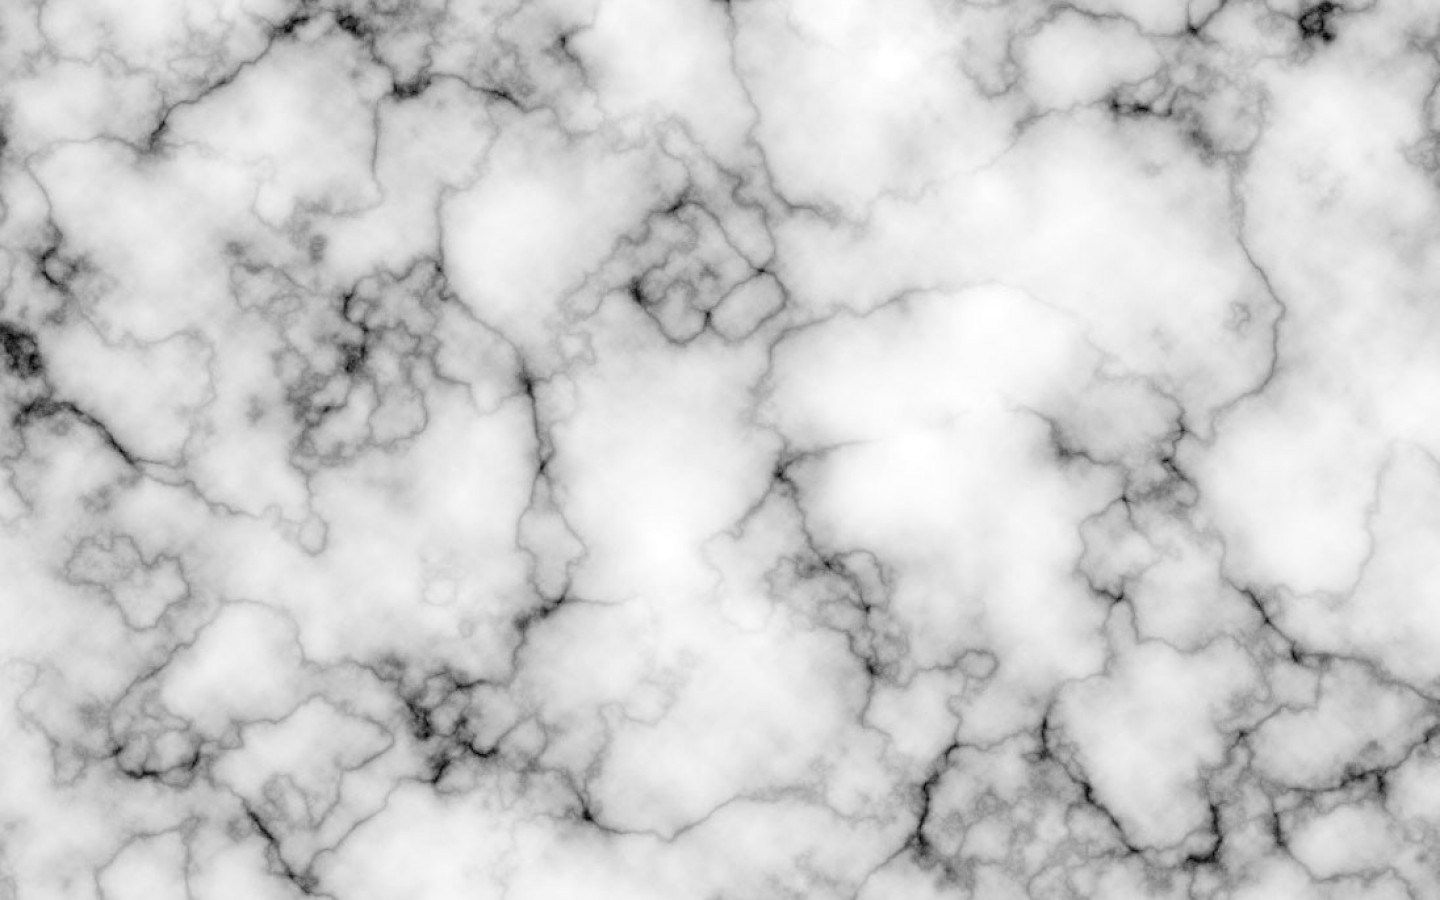 Marble Aesthetic Computer Wallpapers On Wallpaperdog